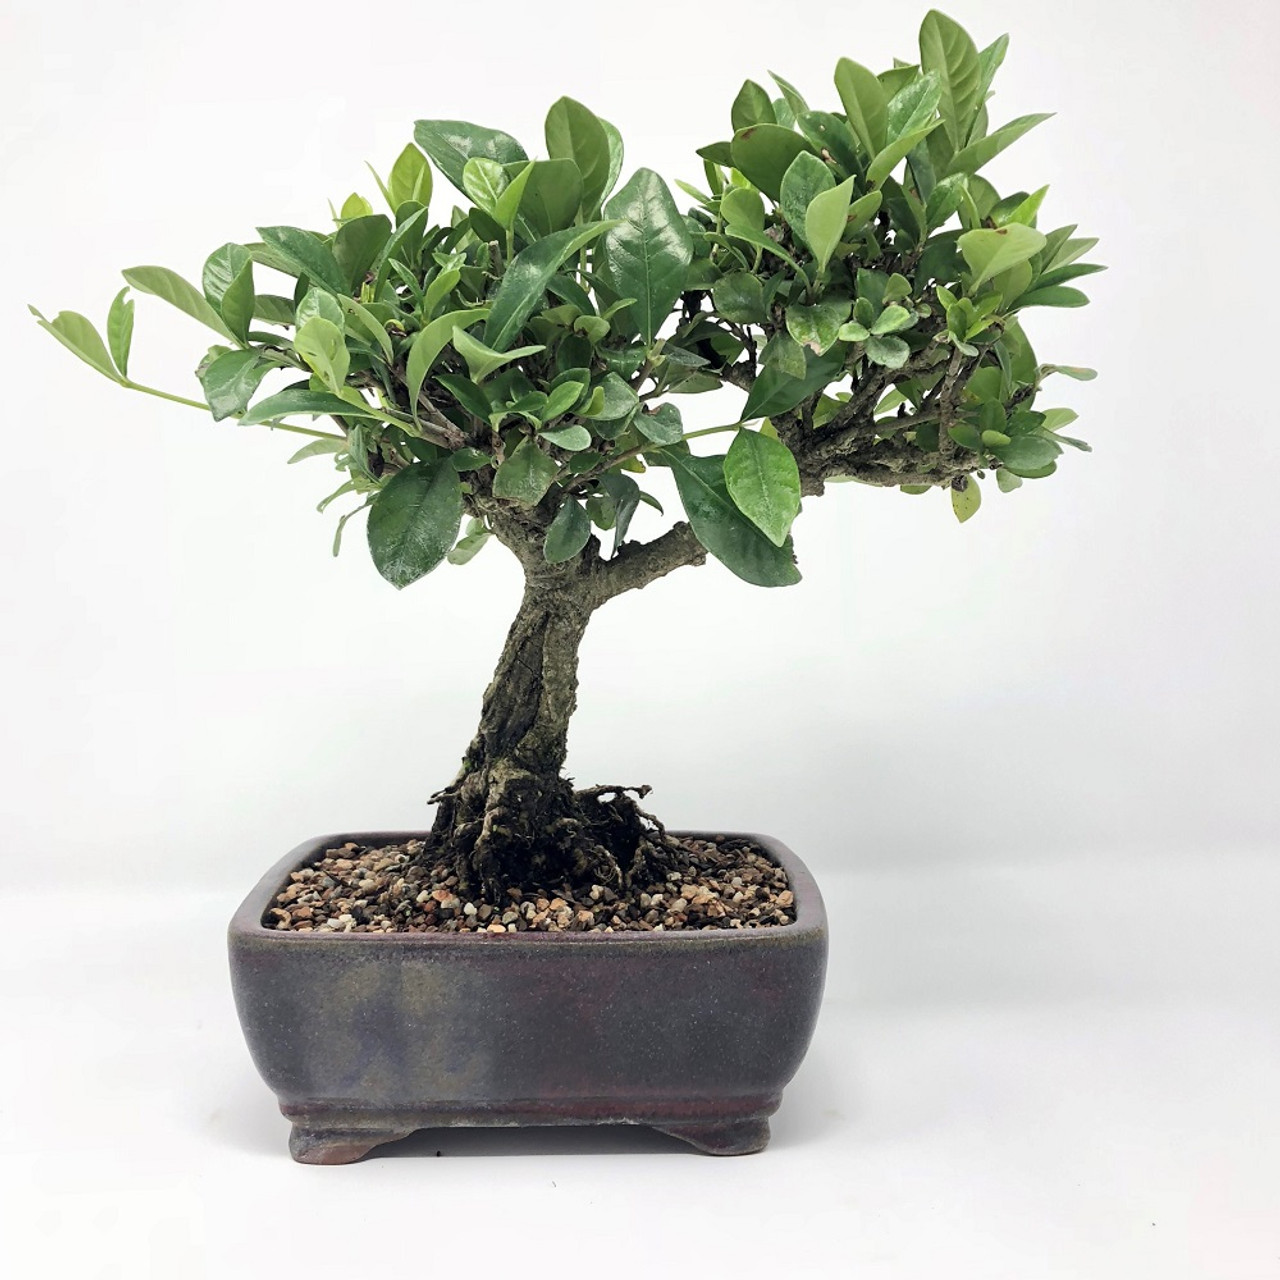 Flowering Gardenia Bonsai Tree Bonsai Outlet